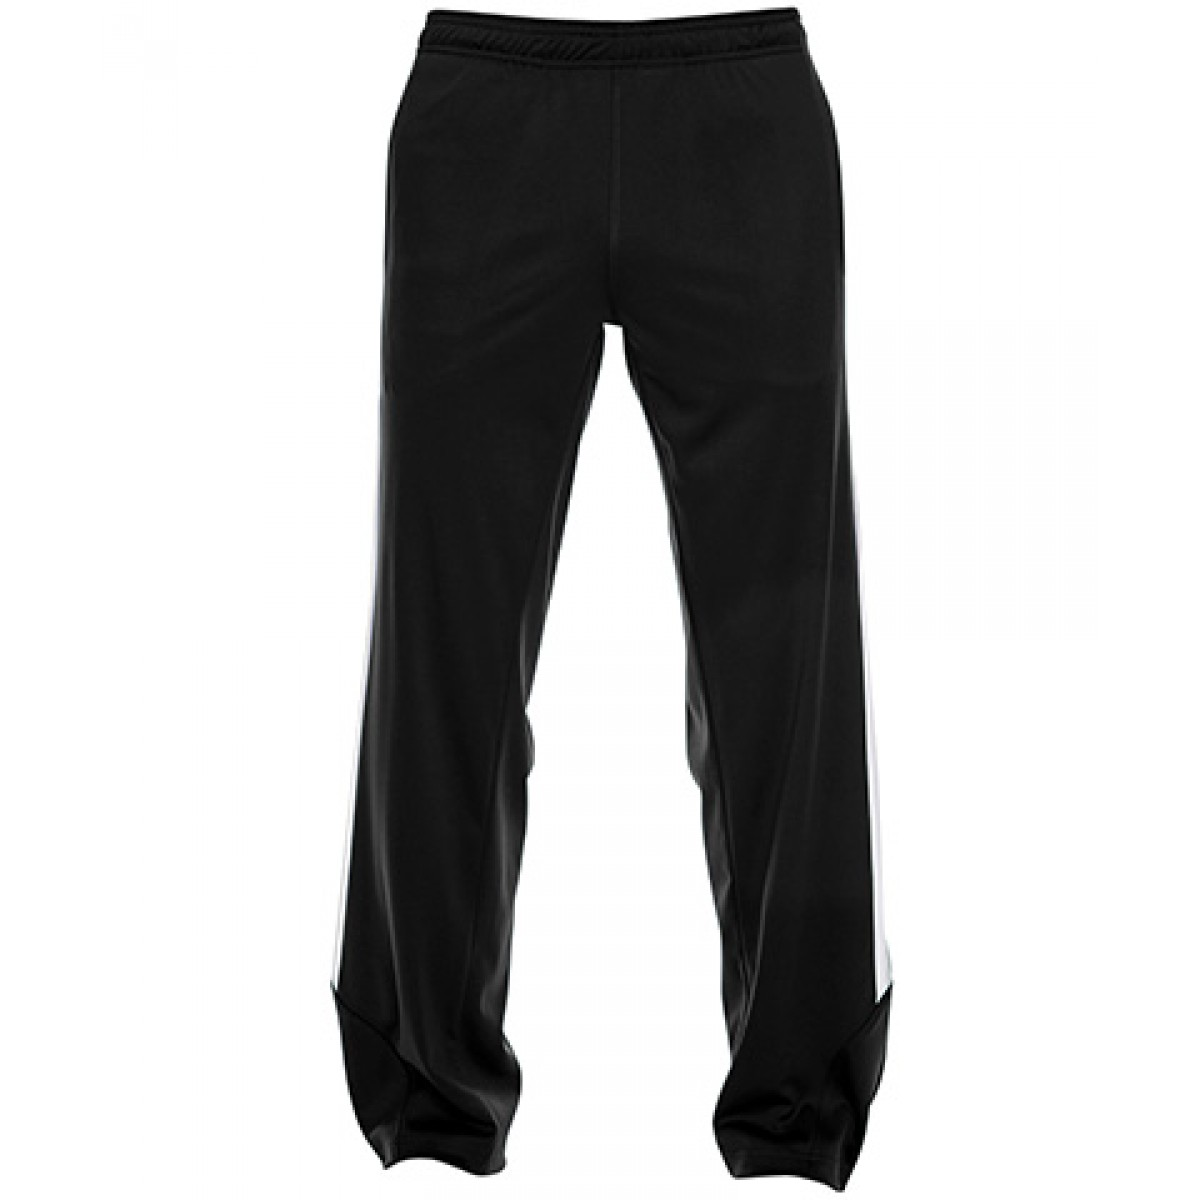 Men's Elite Performance Fleece Pant-Black-XL